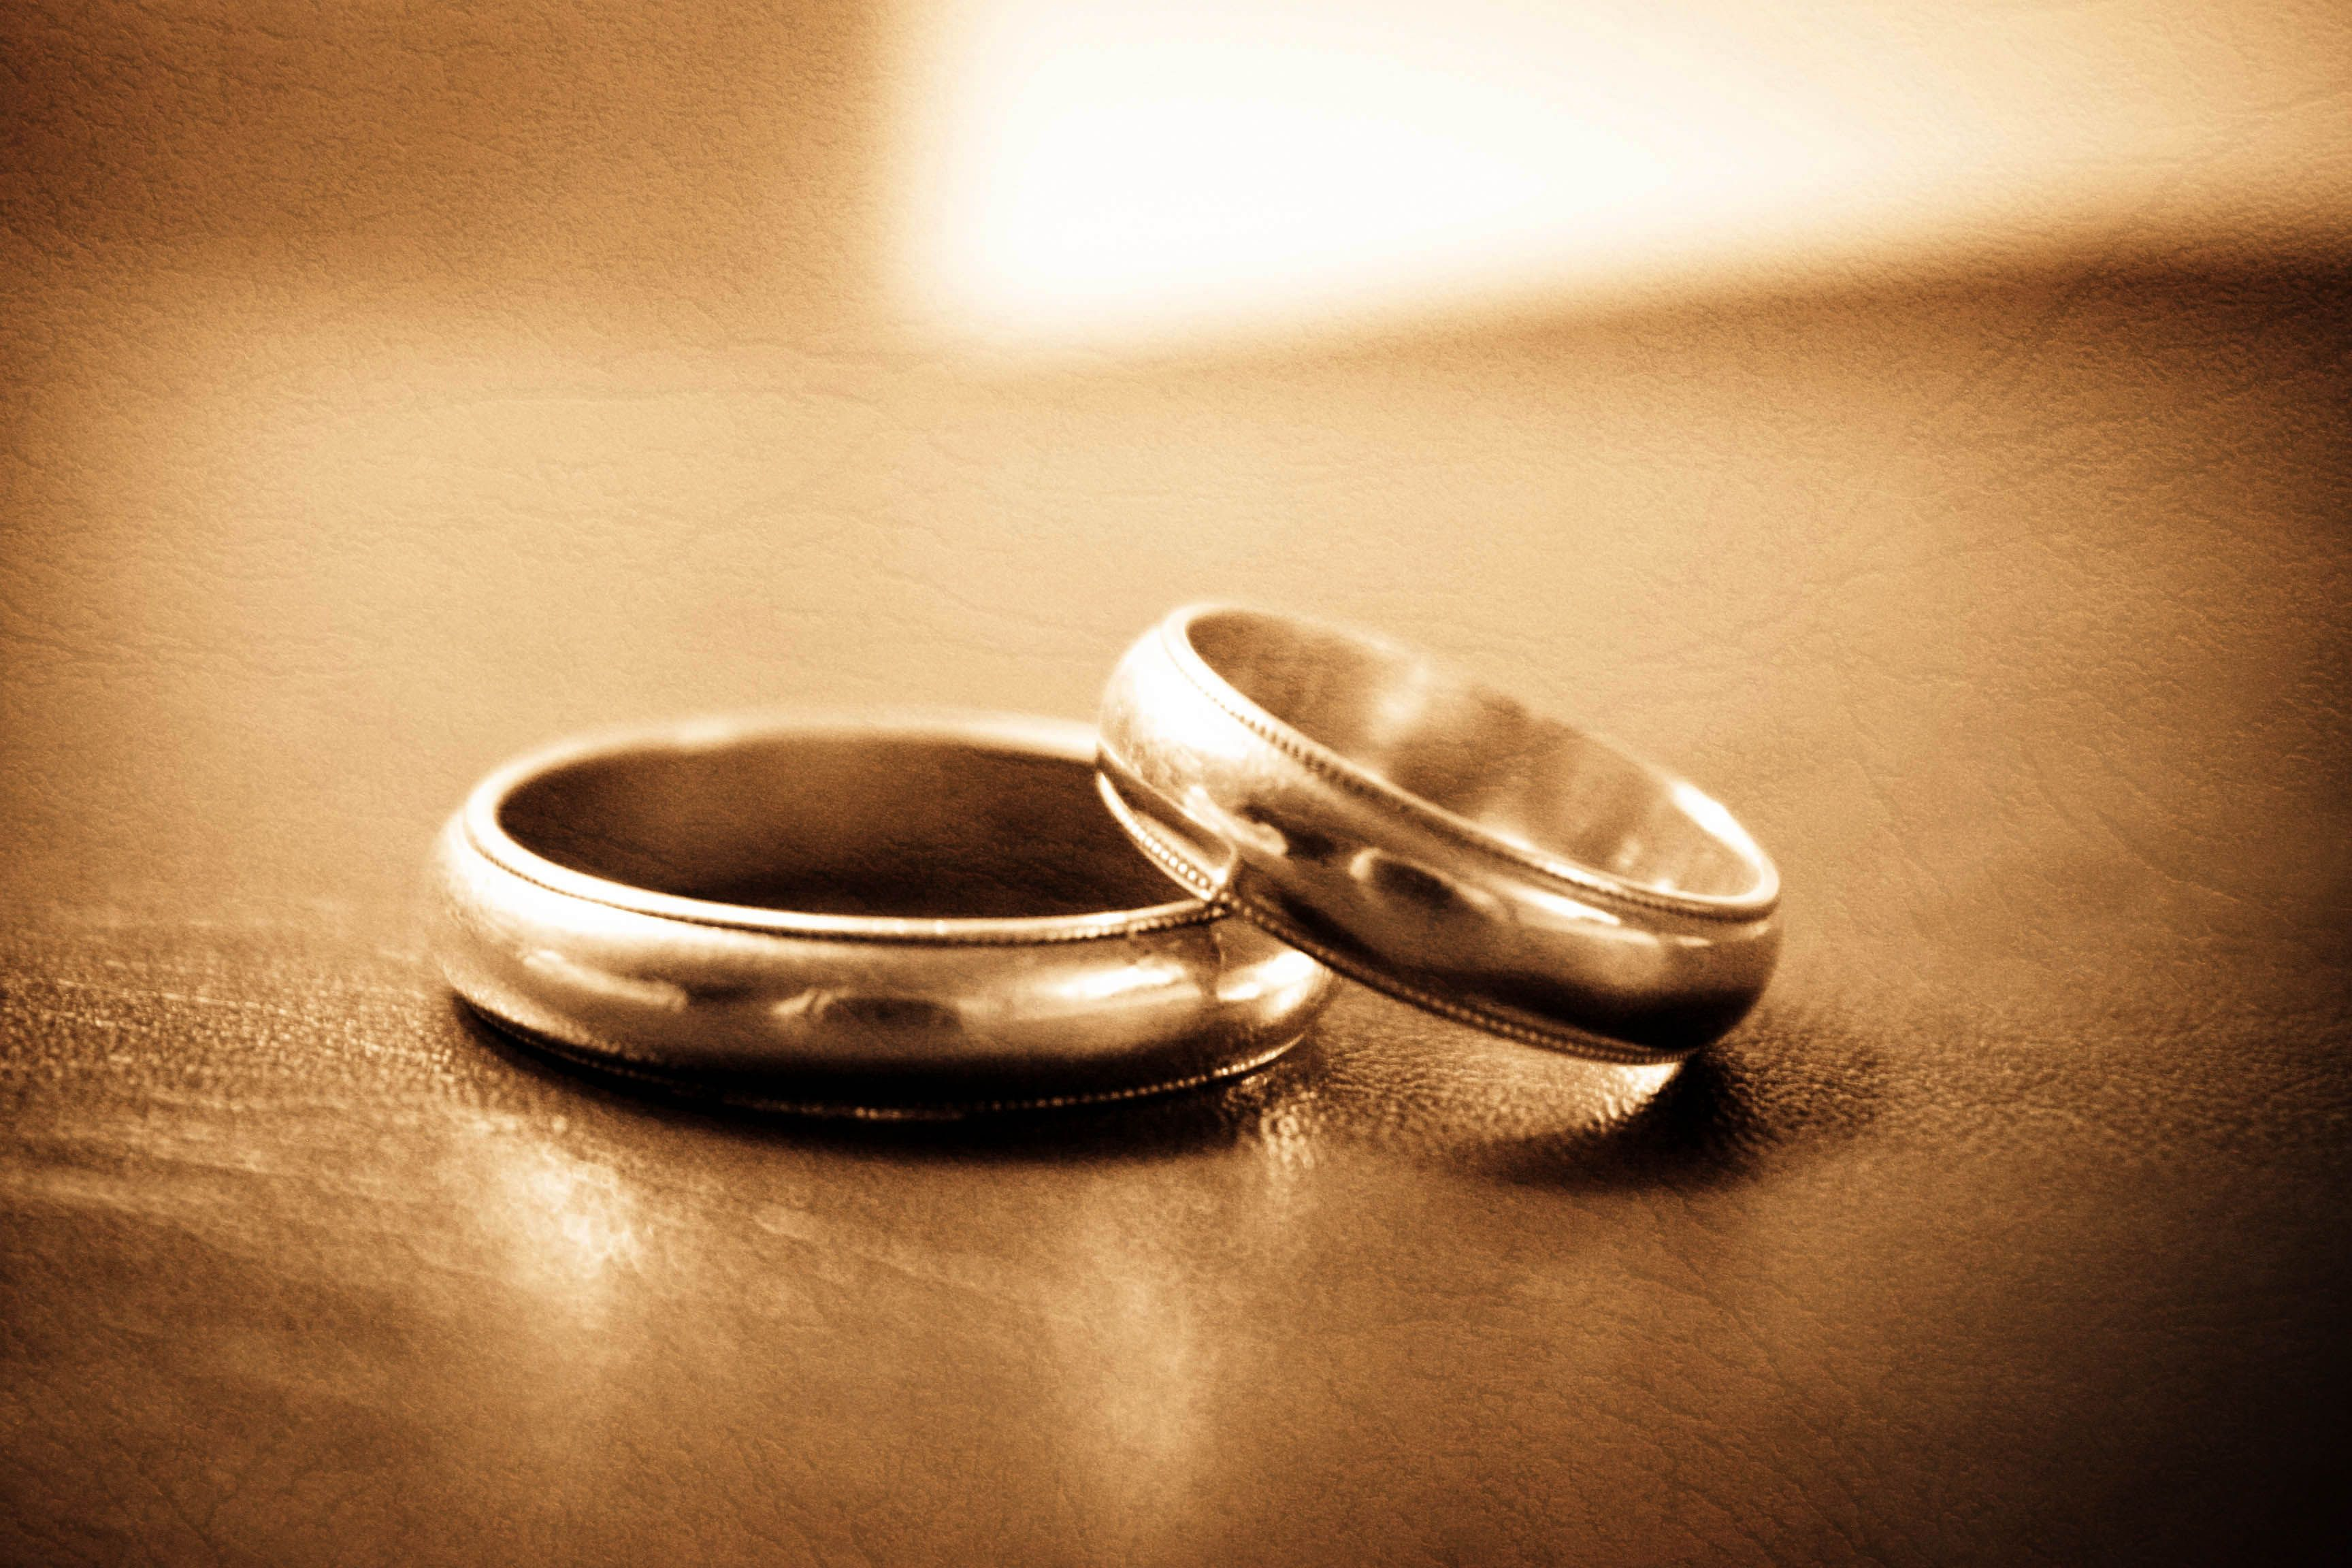 of unique bible awesome org verses to verse luxury wedding rings engrave on gallery kartex